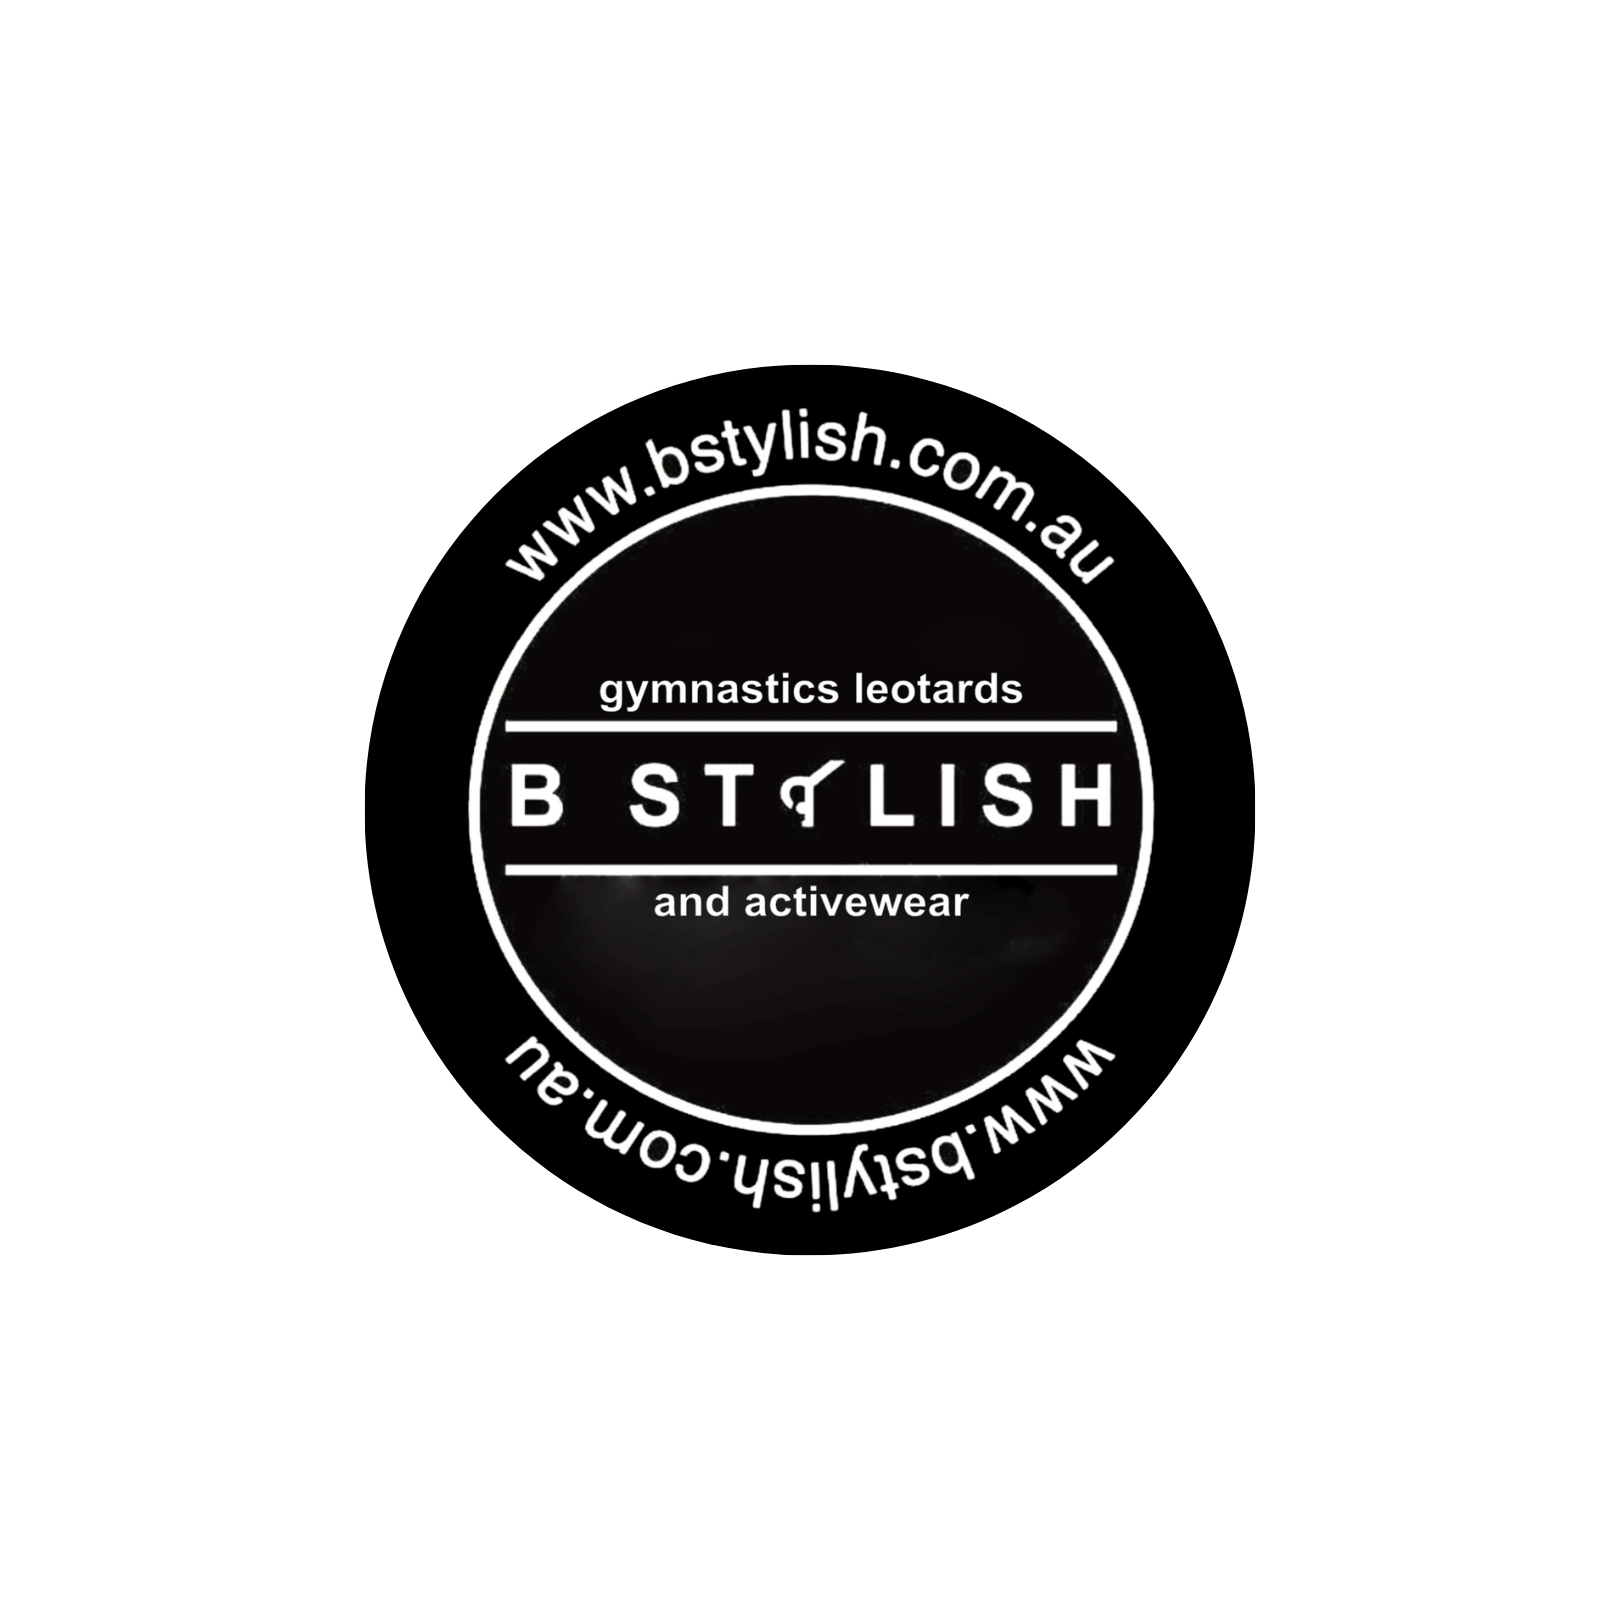 B Stylish is a Brisbane-based gymnastics and activewear company that prides itself on its quality, individuality, and style.  We offer a wide range of comfortable and long-lasting products to suit a beginner or an advanced performer.